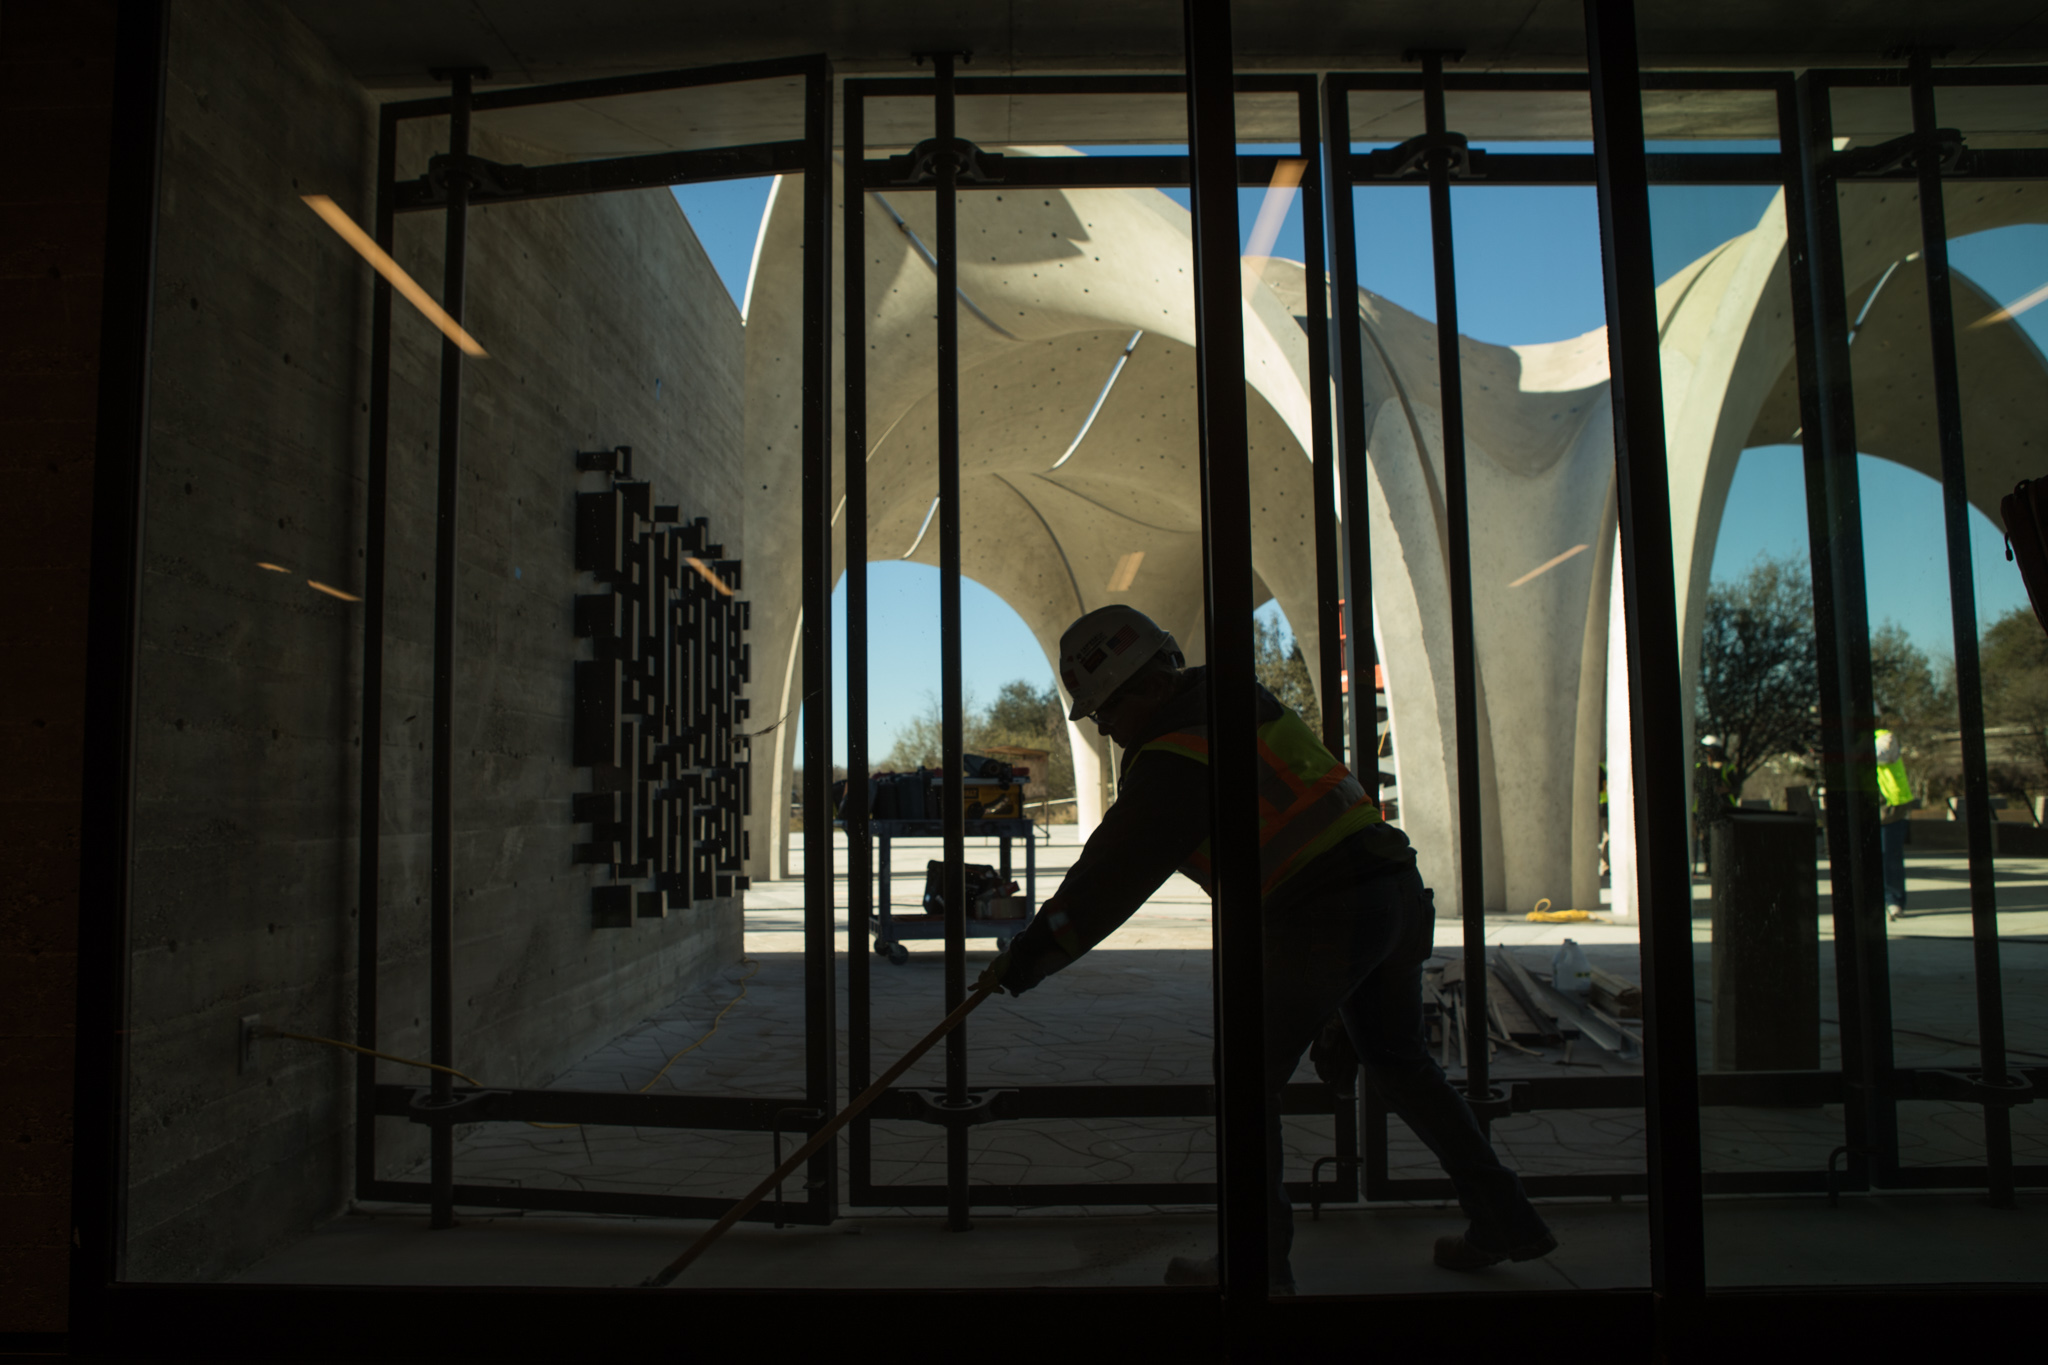 A man sweeps the inside of the Estela Avery Education Center before the opening of Confluence Park.